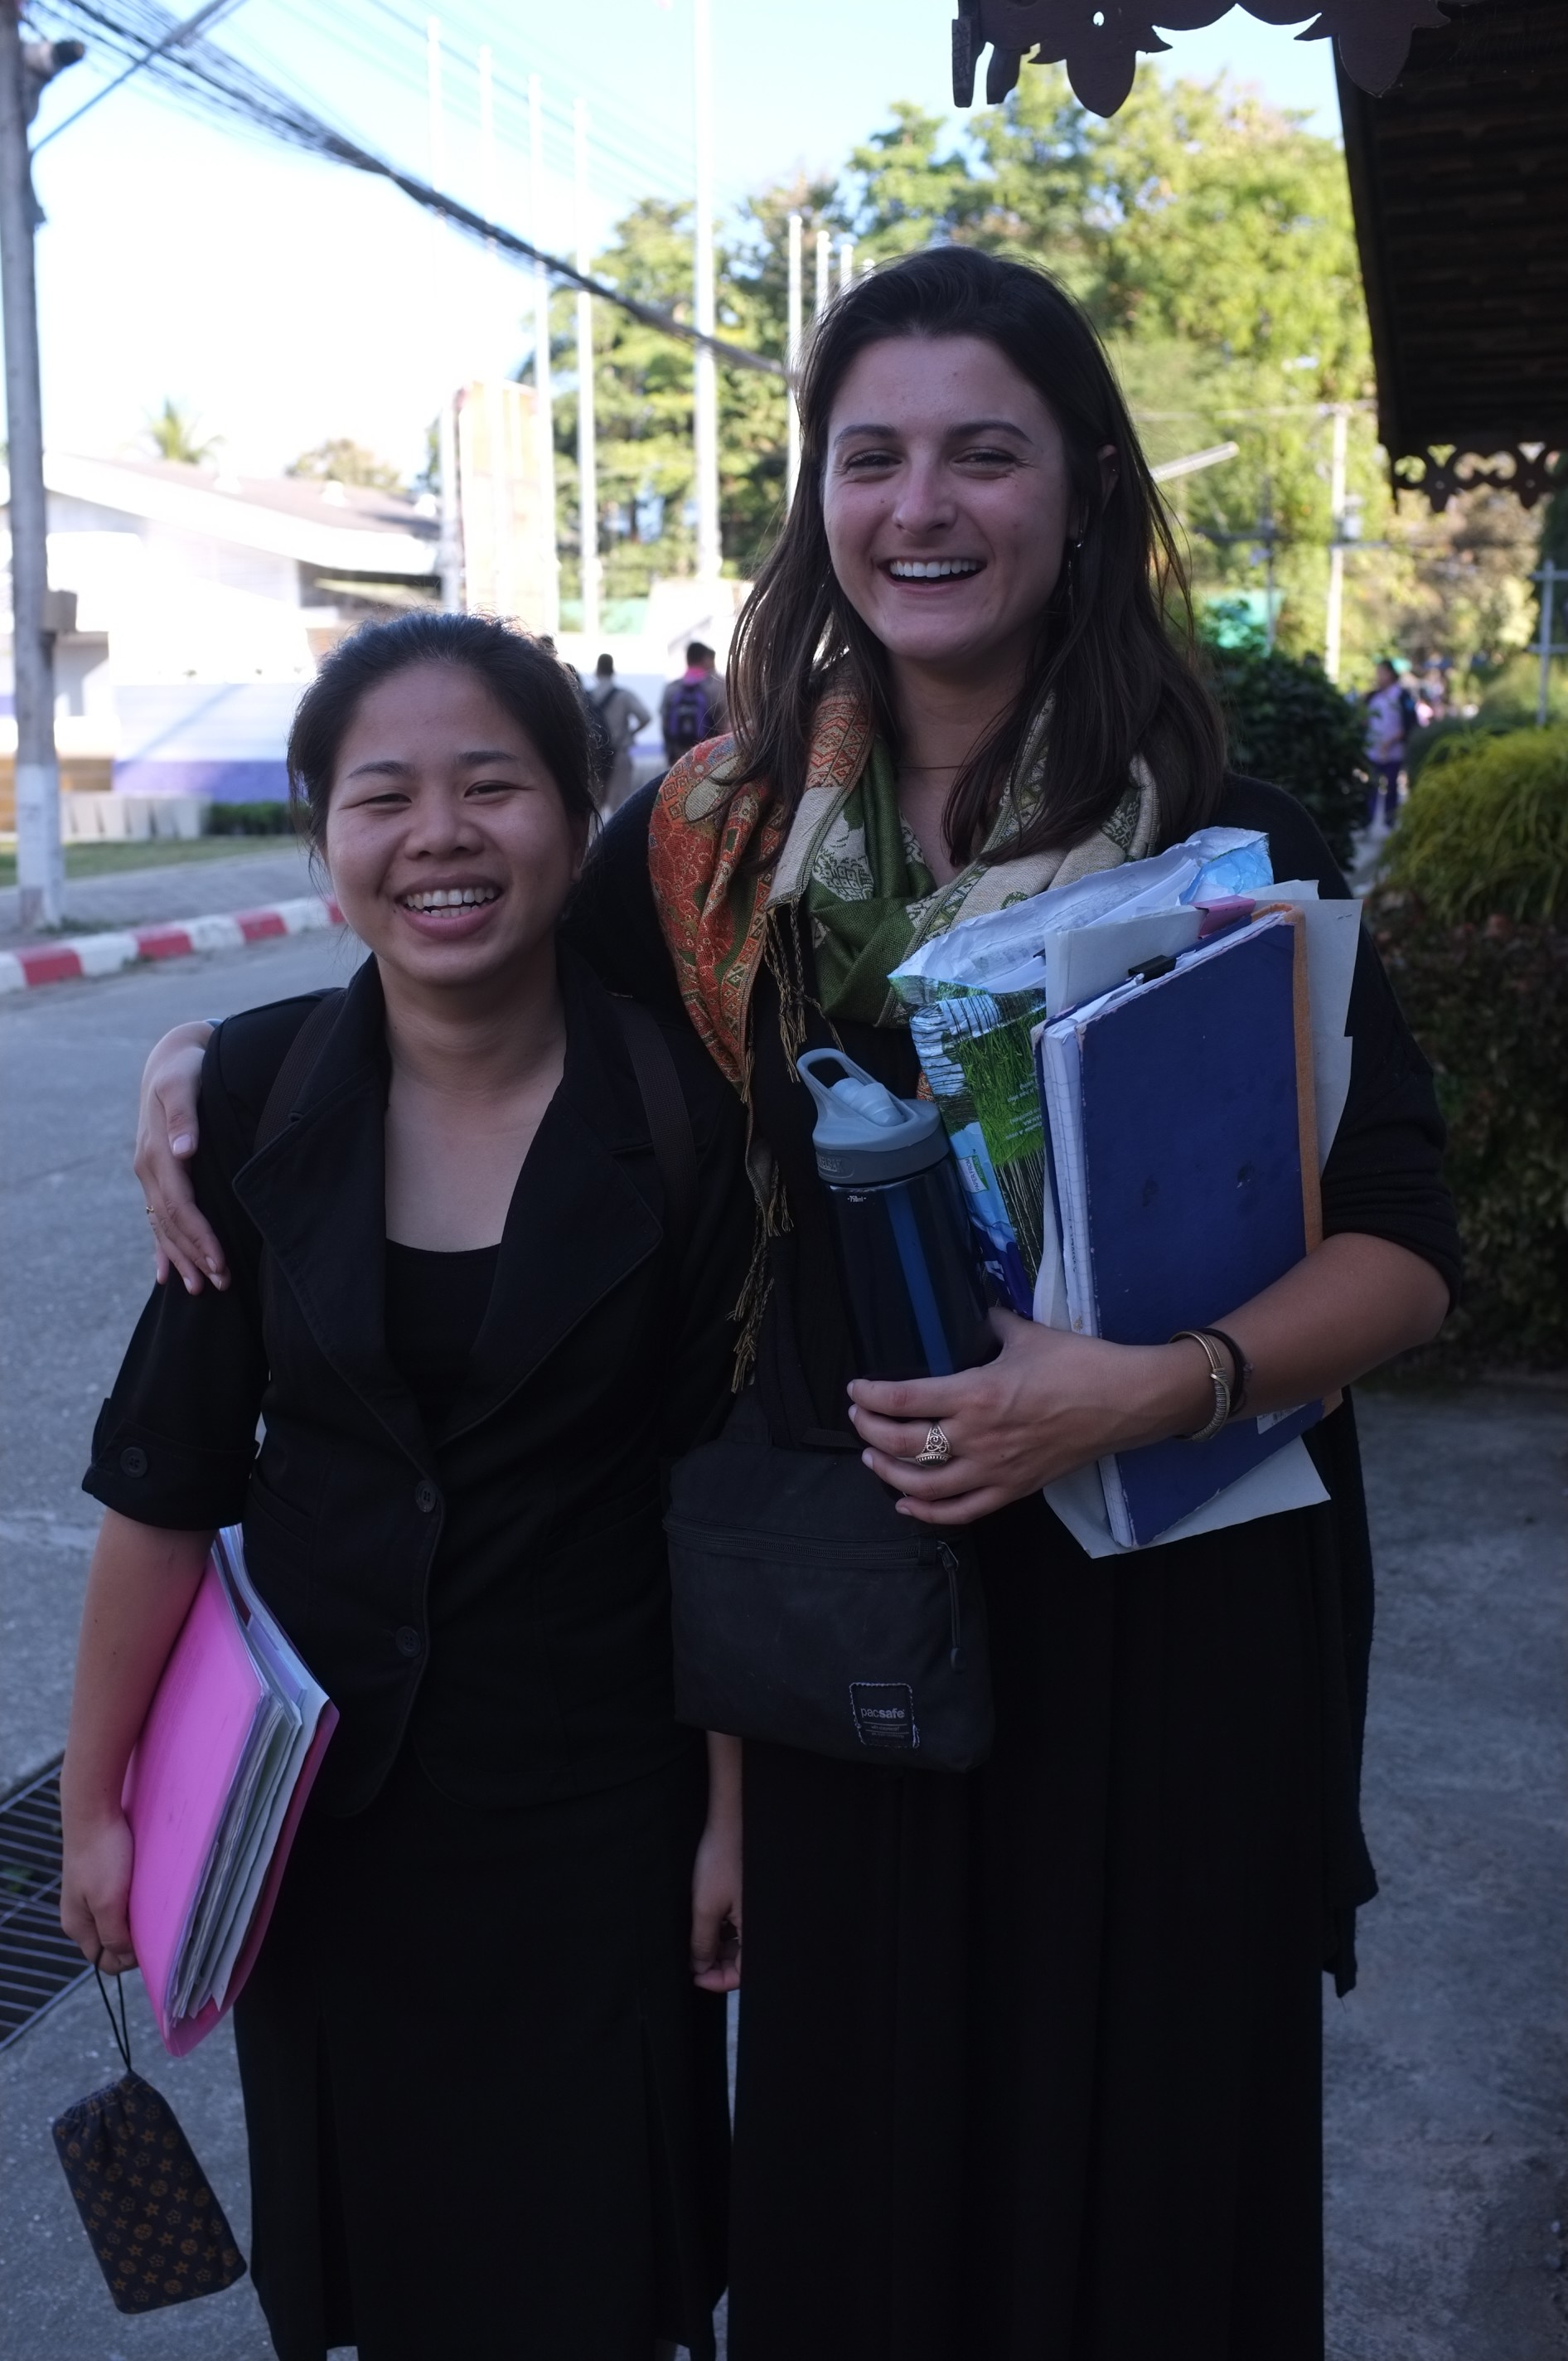 Marissa and Biw, a Thai teacher. Marissa is small and isn't particularly tall. Thai people are just so little.